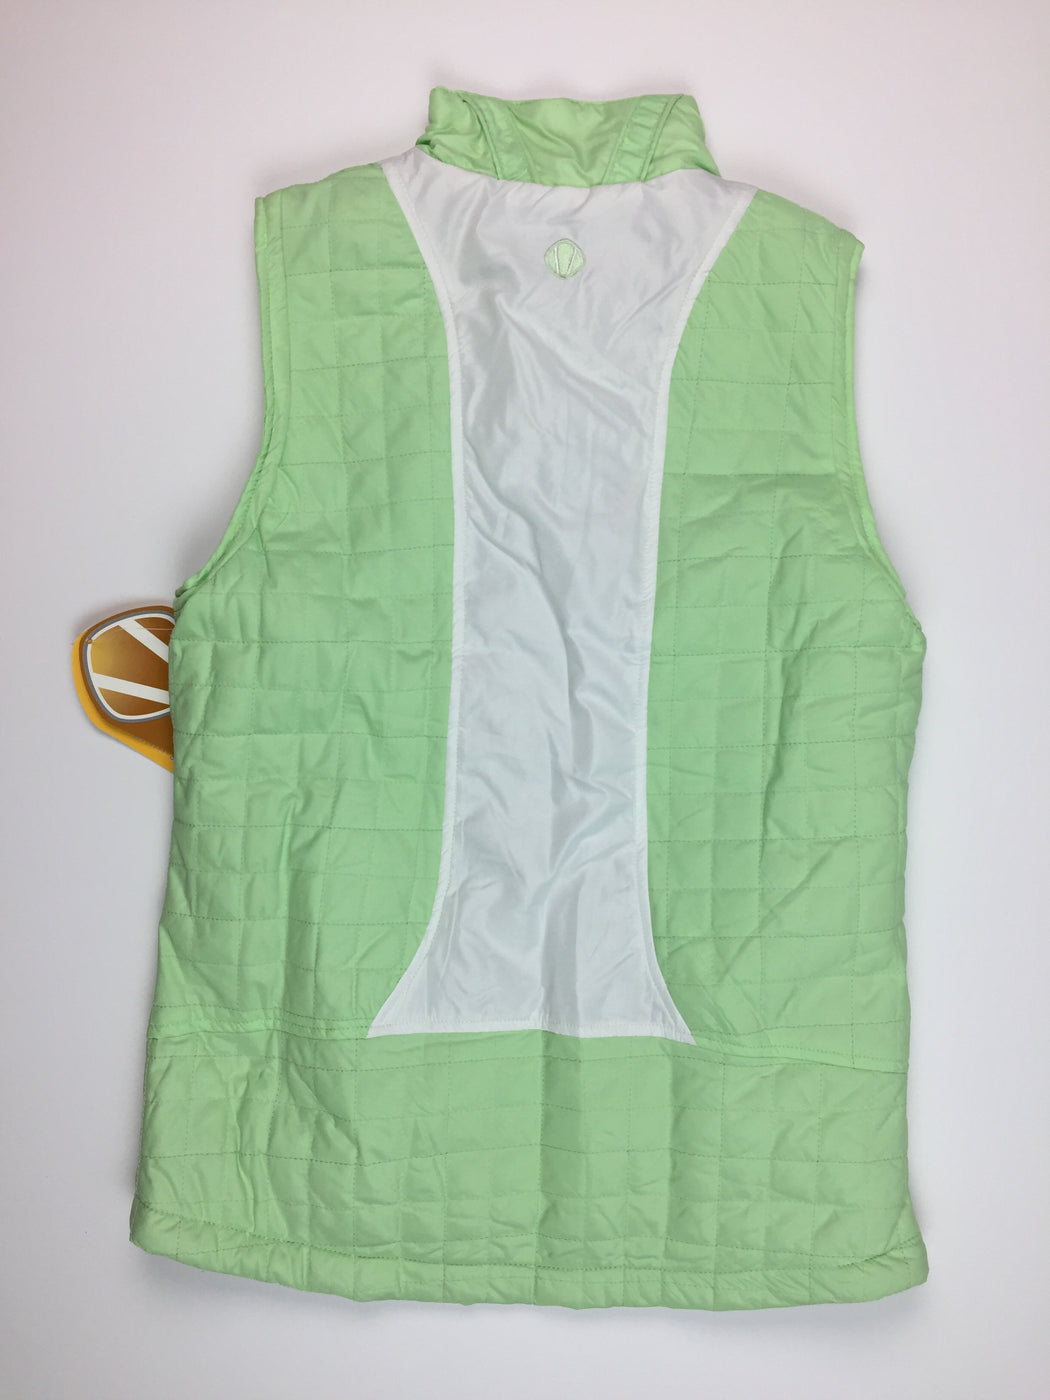 olv quilted puffer quilt do s francesca vest cl clback back product quinn green